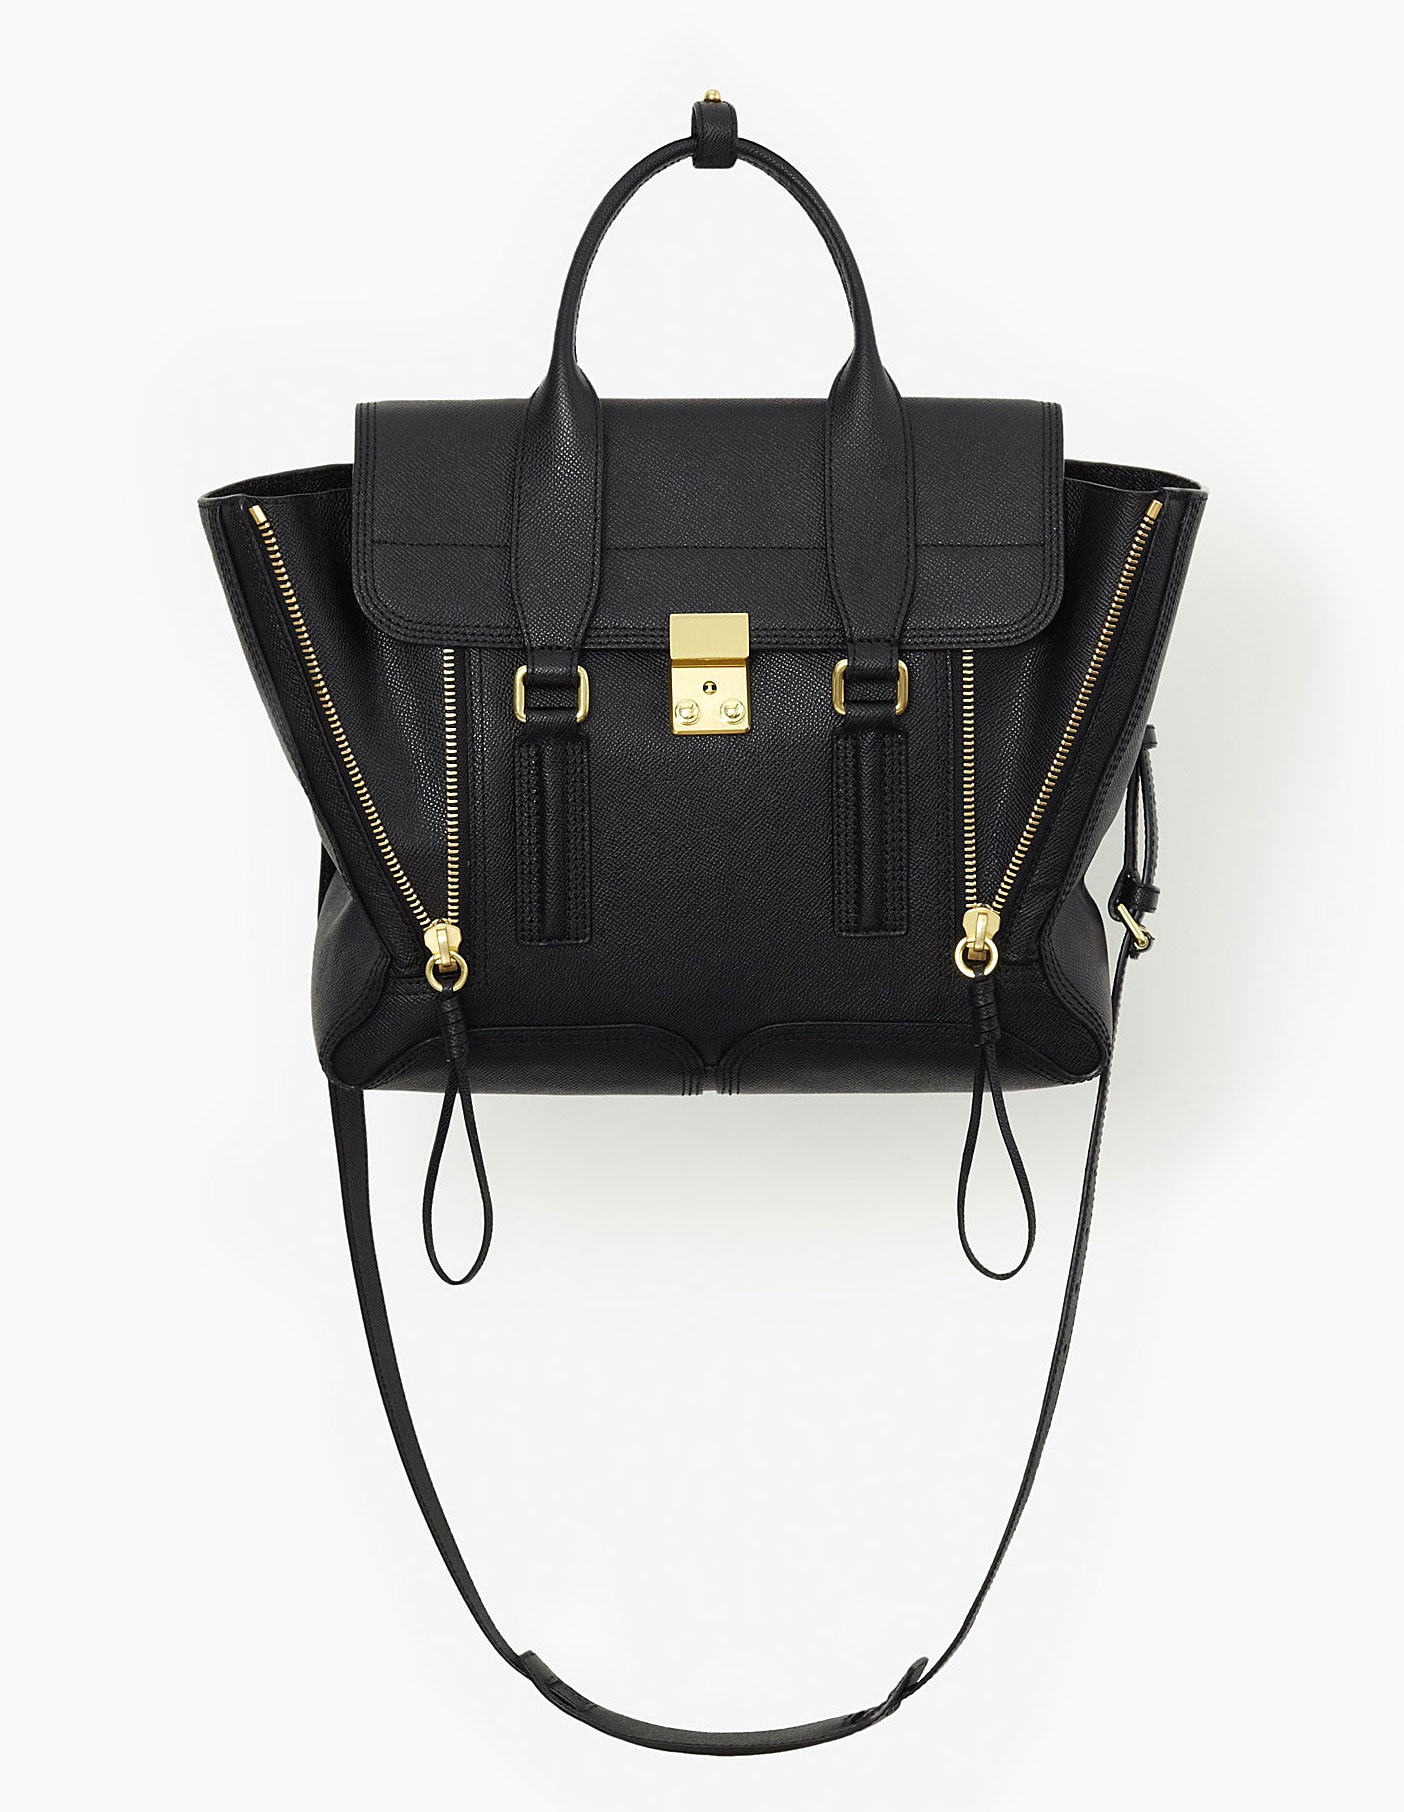 3.1 Phillip Lim Pashli Satchel Bag Black